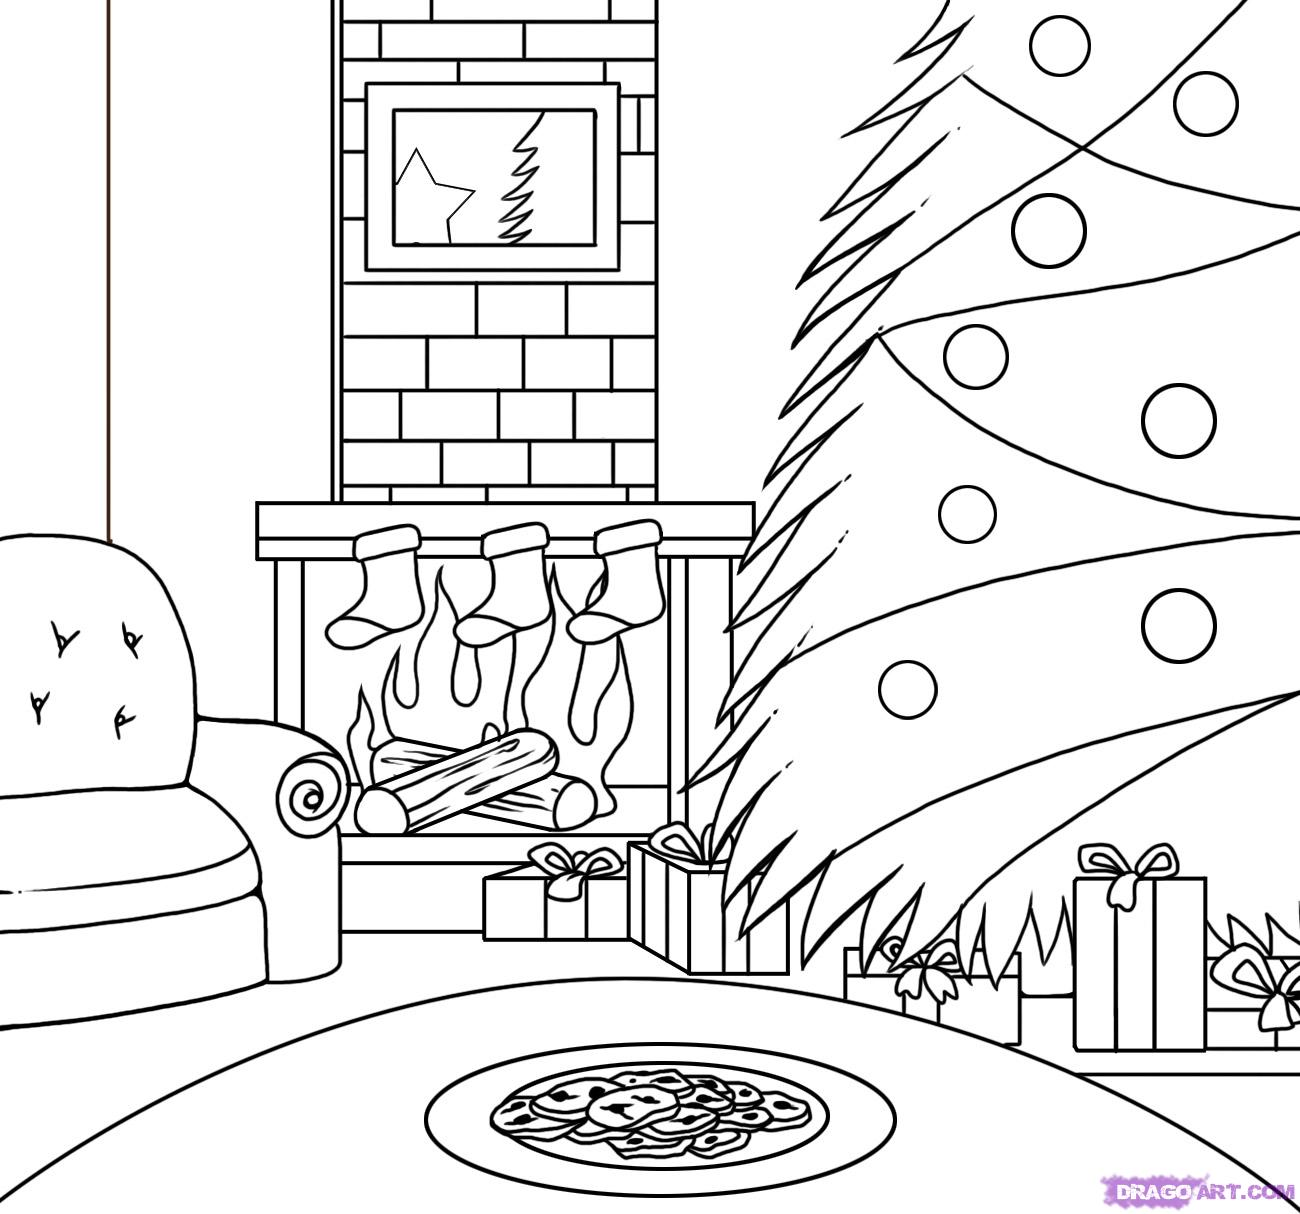 Santa Buddies Coloring Pages With Drawn Christmas Scene Pencil And In Color